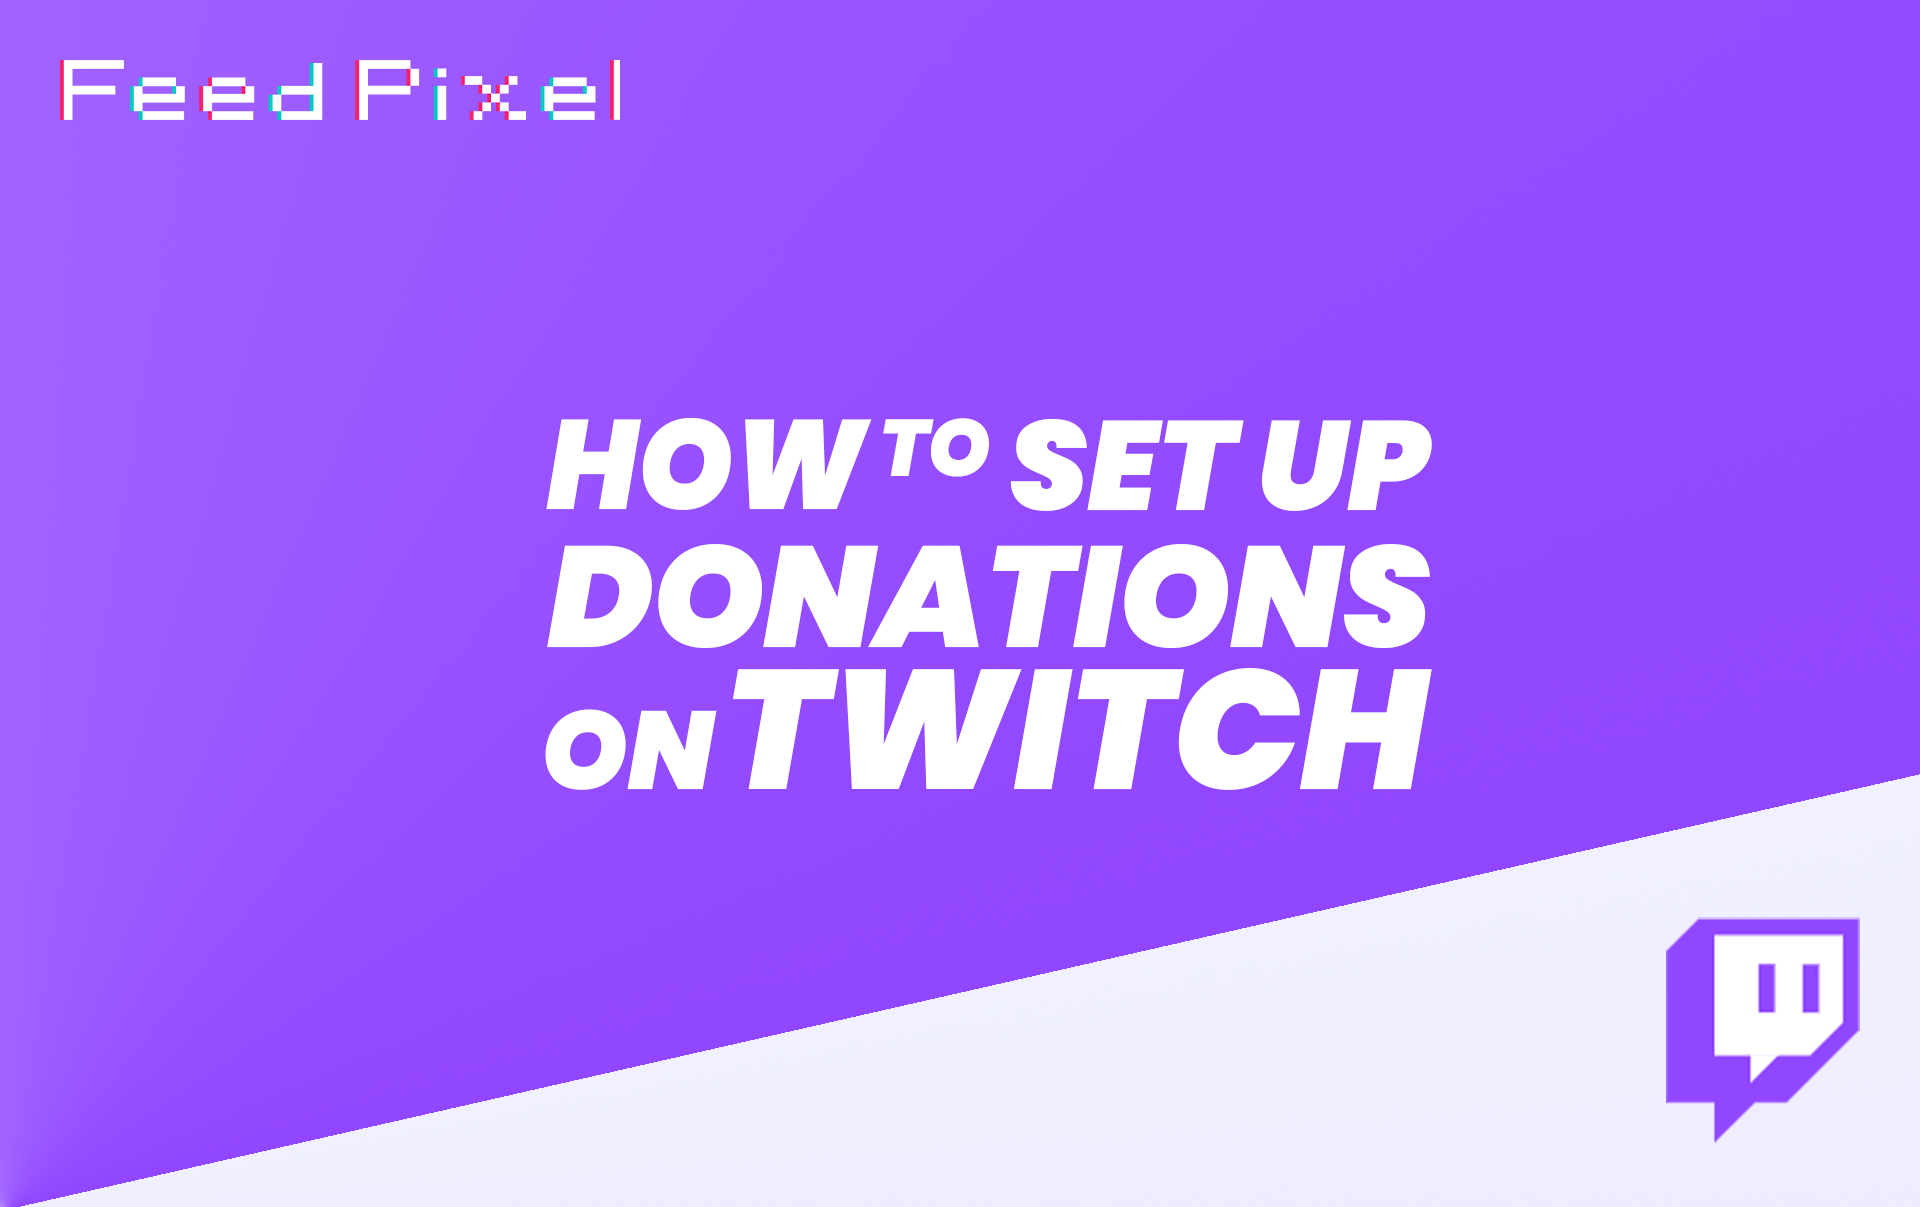 How To Set Up Donations On Twitch?